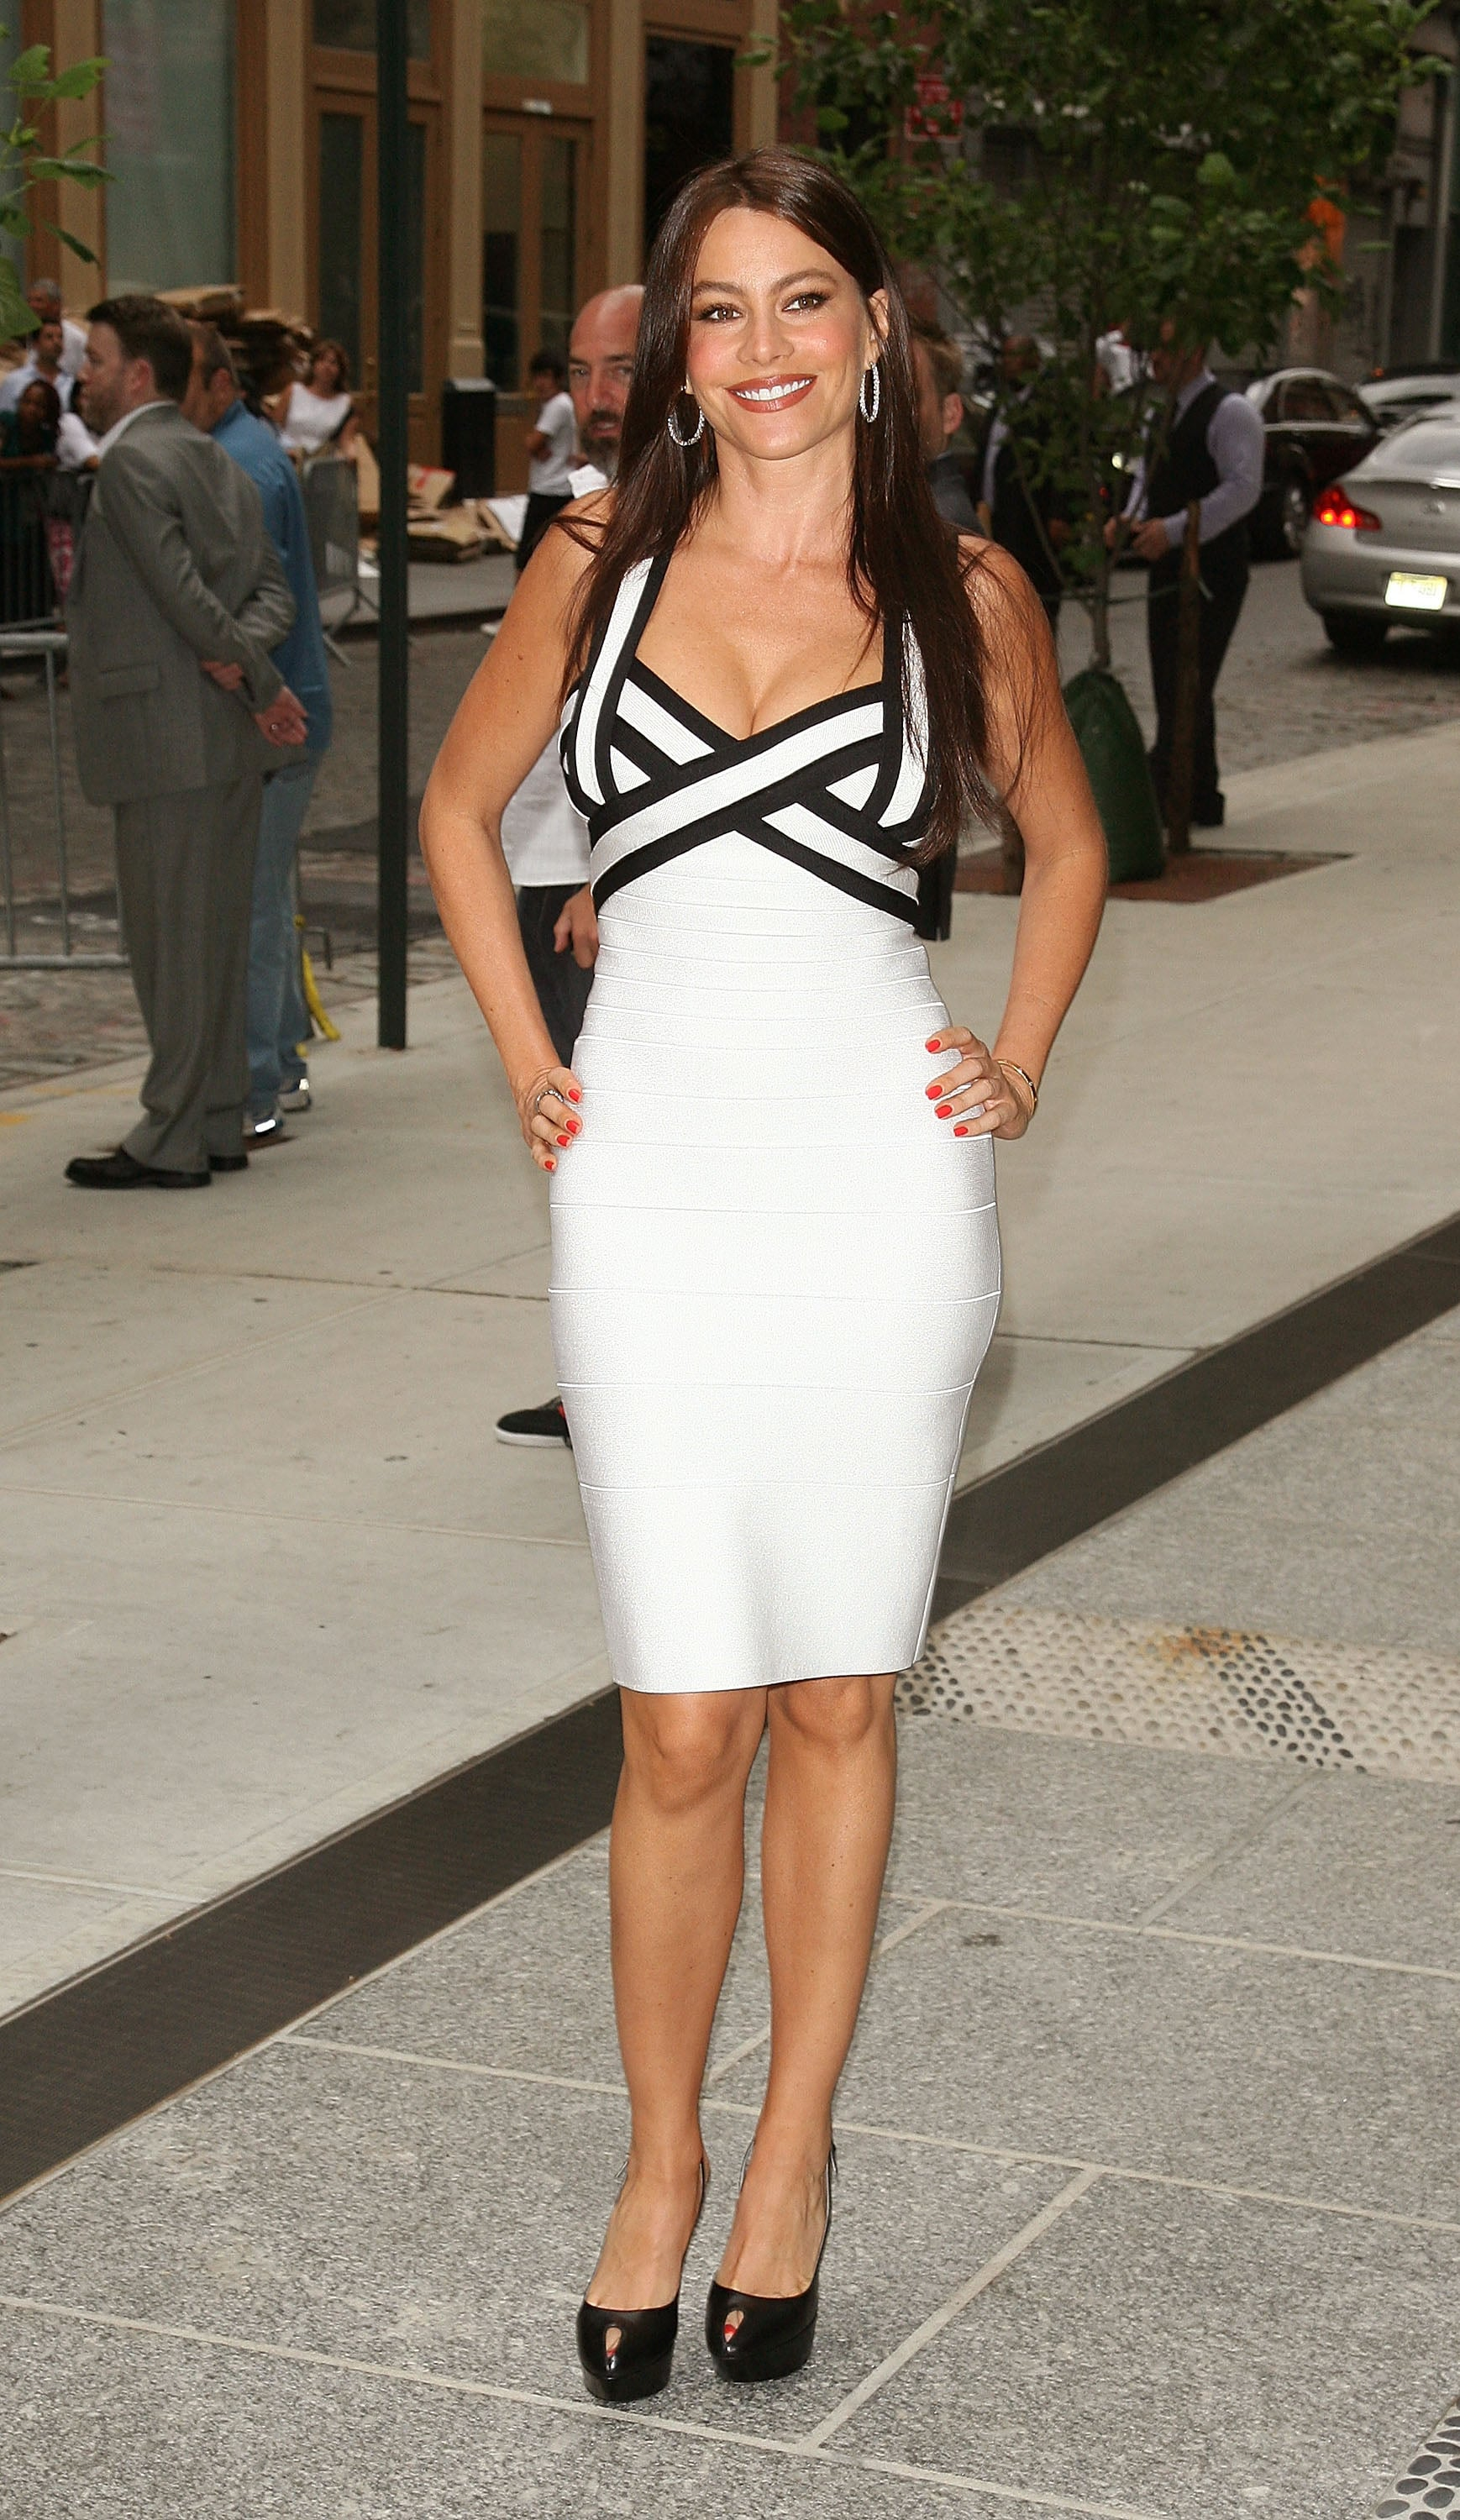 Sofia Vergara touched on the black-and-white trend long before it was popular, looking flawless in a contrasting bandage dress at the NYC screening of The Twilight Saga: Eclipse in June 2010.